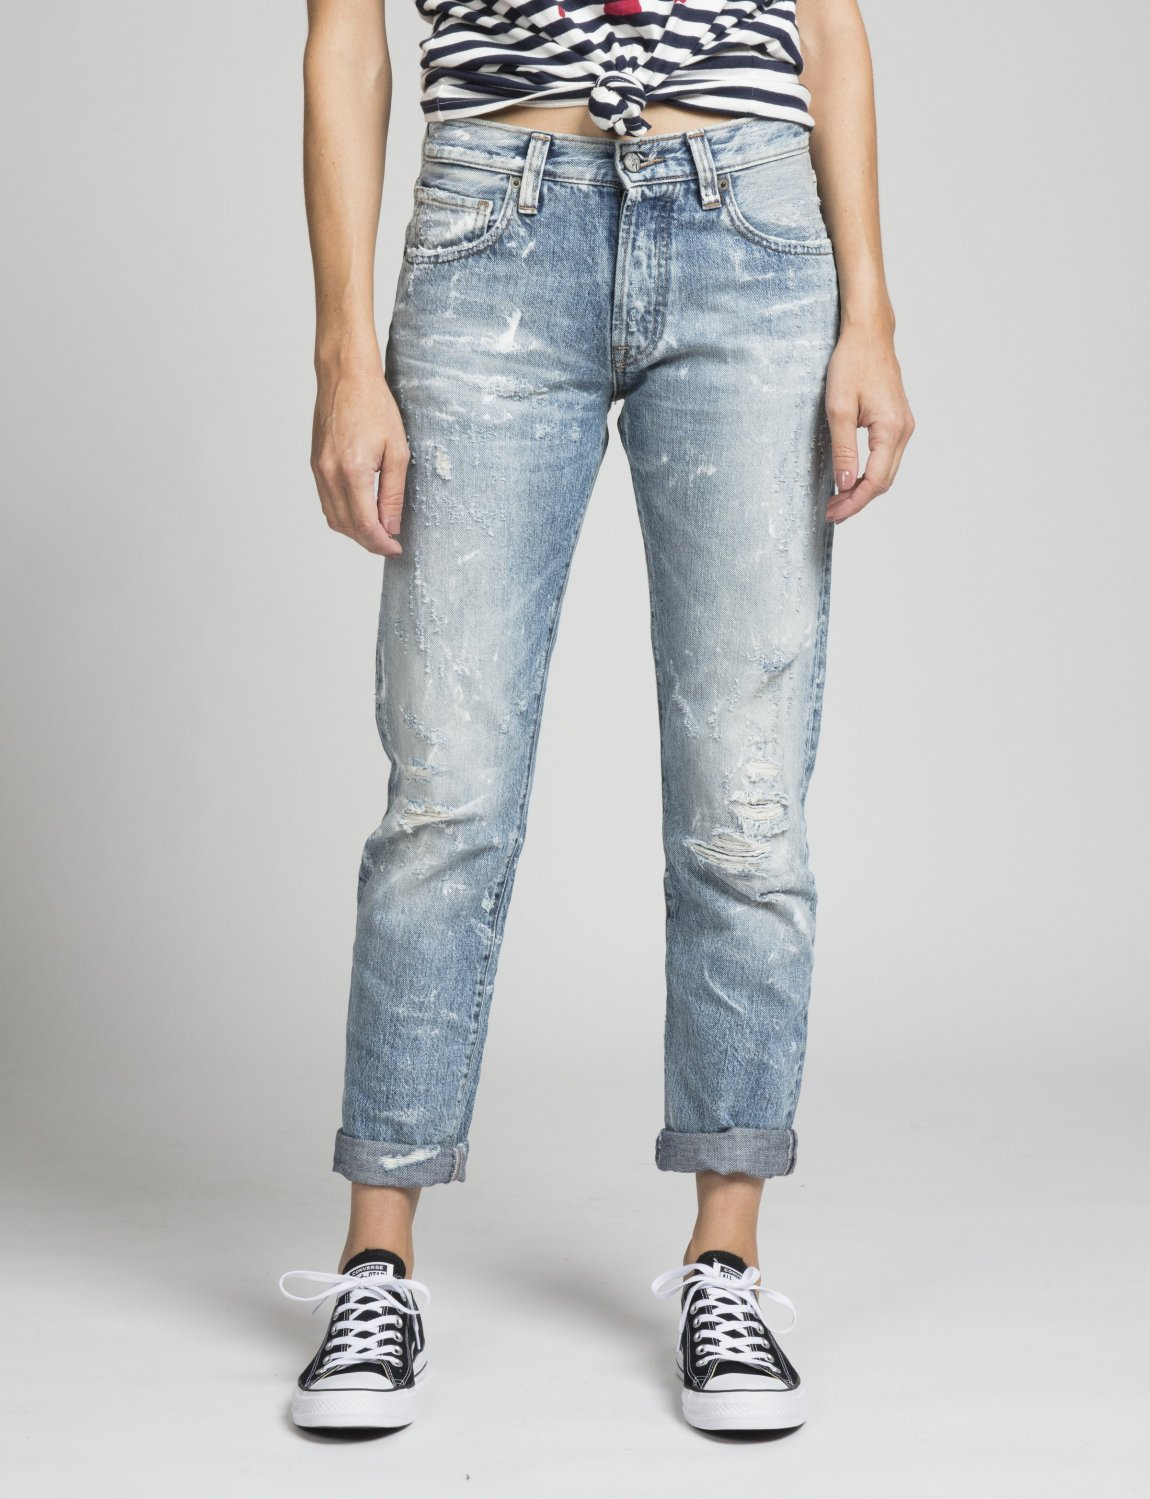 PRPS, el camino, slouchy skinny, distressed jeans, cropped jeans